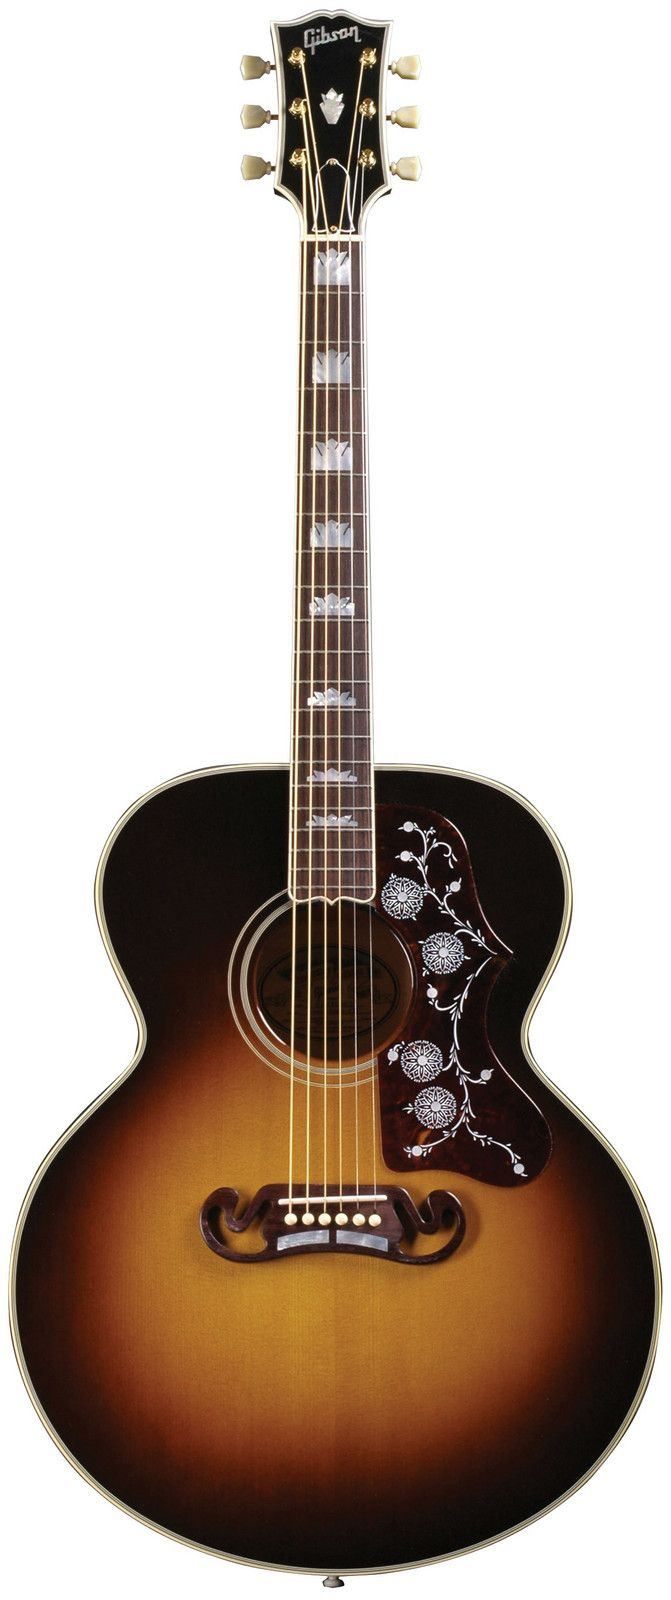 Gibson SJ-200. I have this exact model, color and all. Originally designed for the singing cowboys of the 1930s and beloved by generations of rockers and country outlaws alike, its widescreen sound and ornate design earned it the designation 'king of the flat-tops.' You'll get no argument from me.